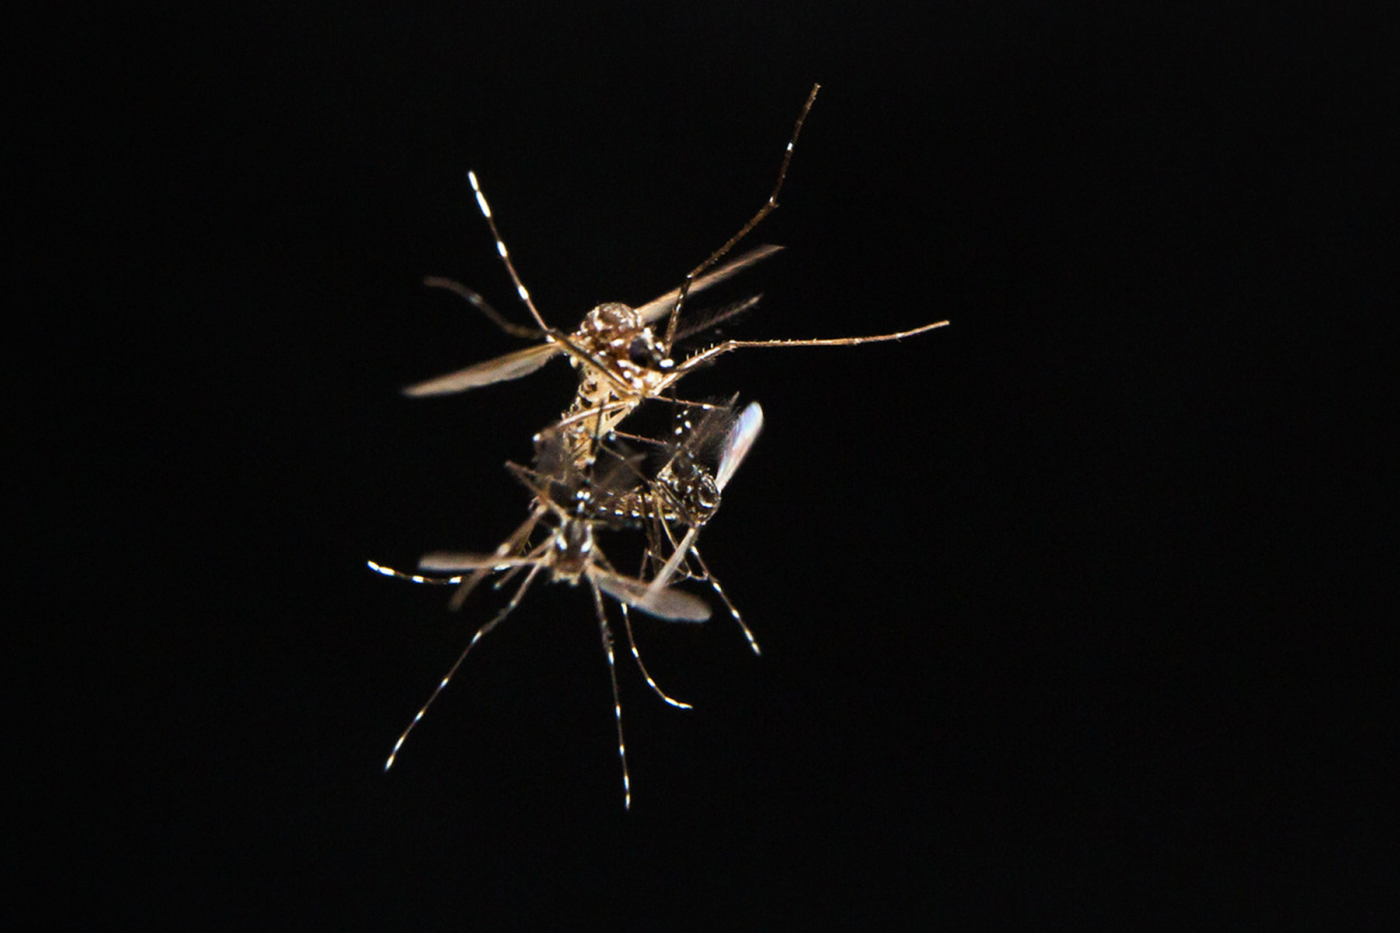 An Aedes aegypti